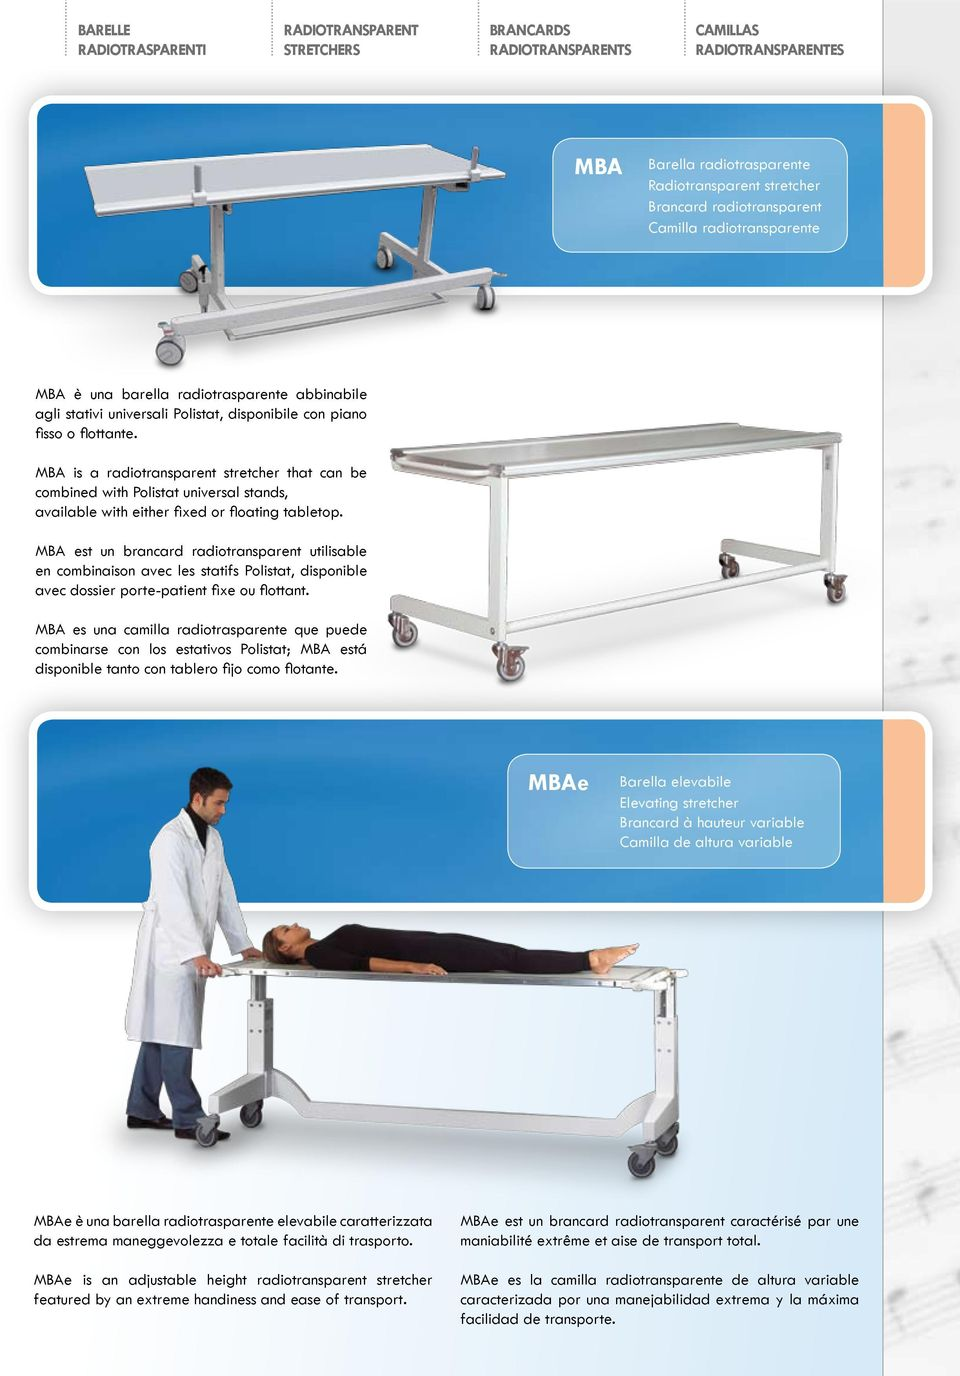 MBA is a radiotransparent stretcher that can be combined with Polistat universal stands, available with either fixed or floating tabletop.